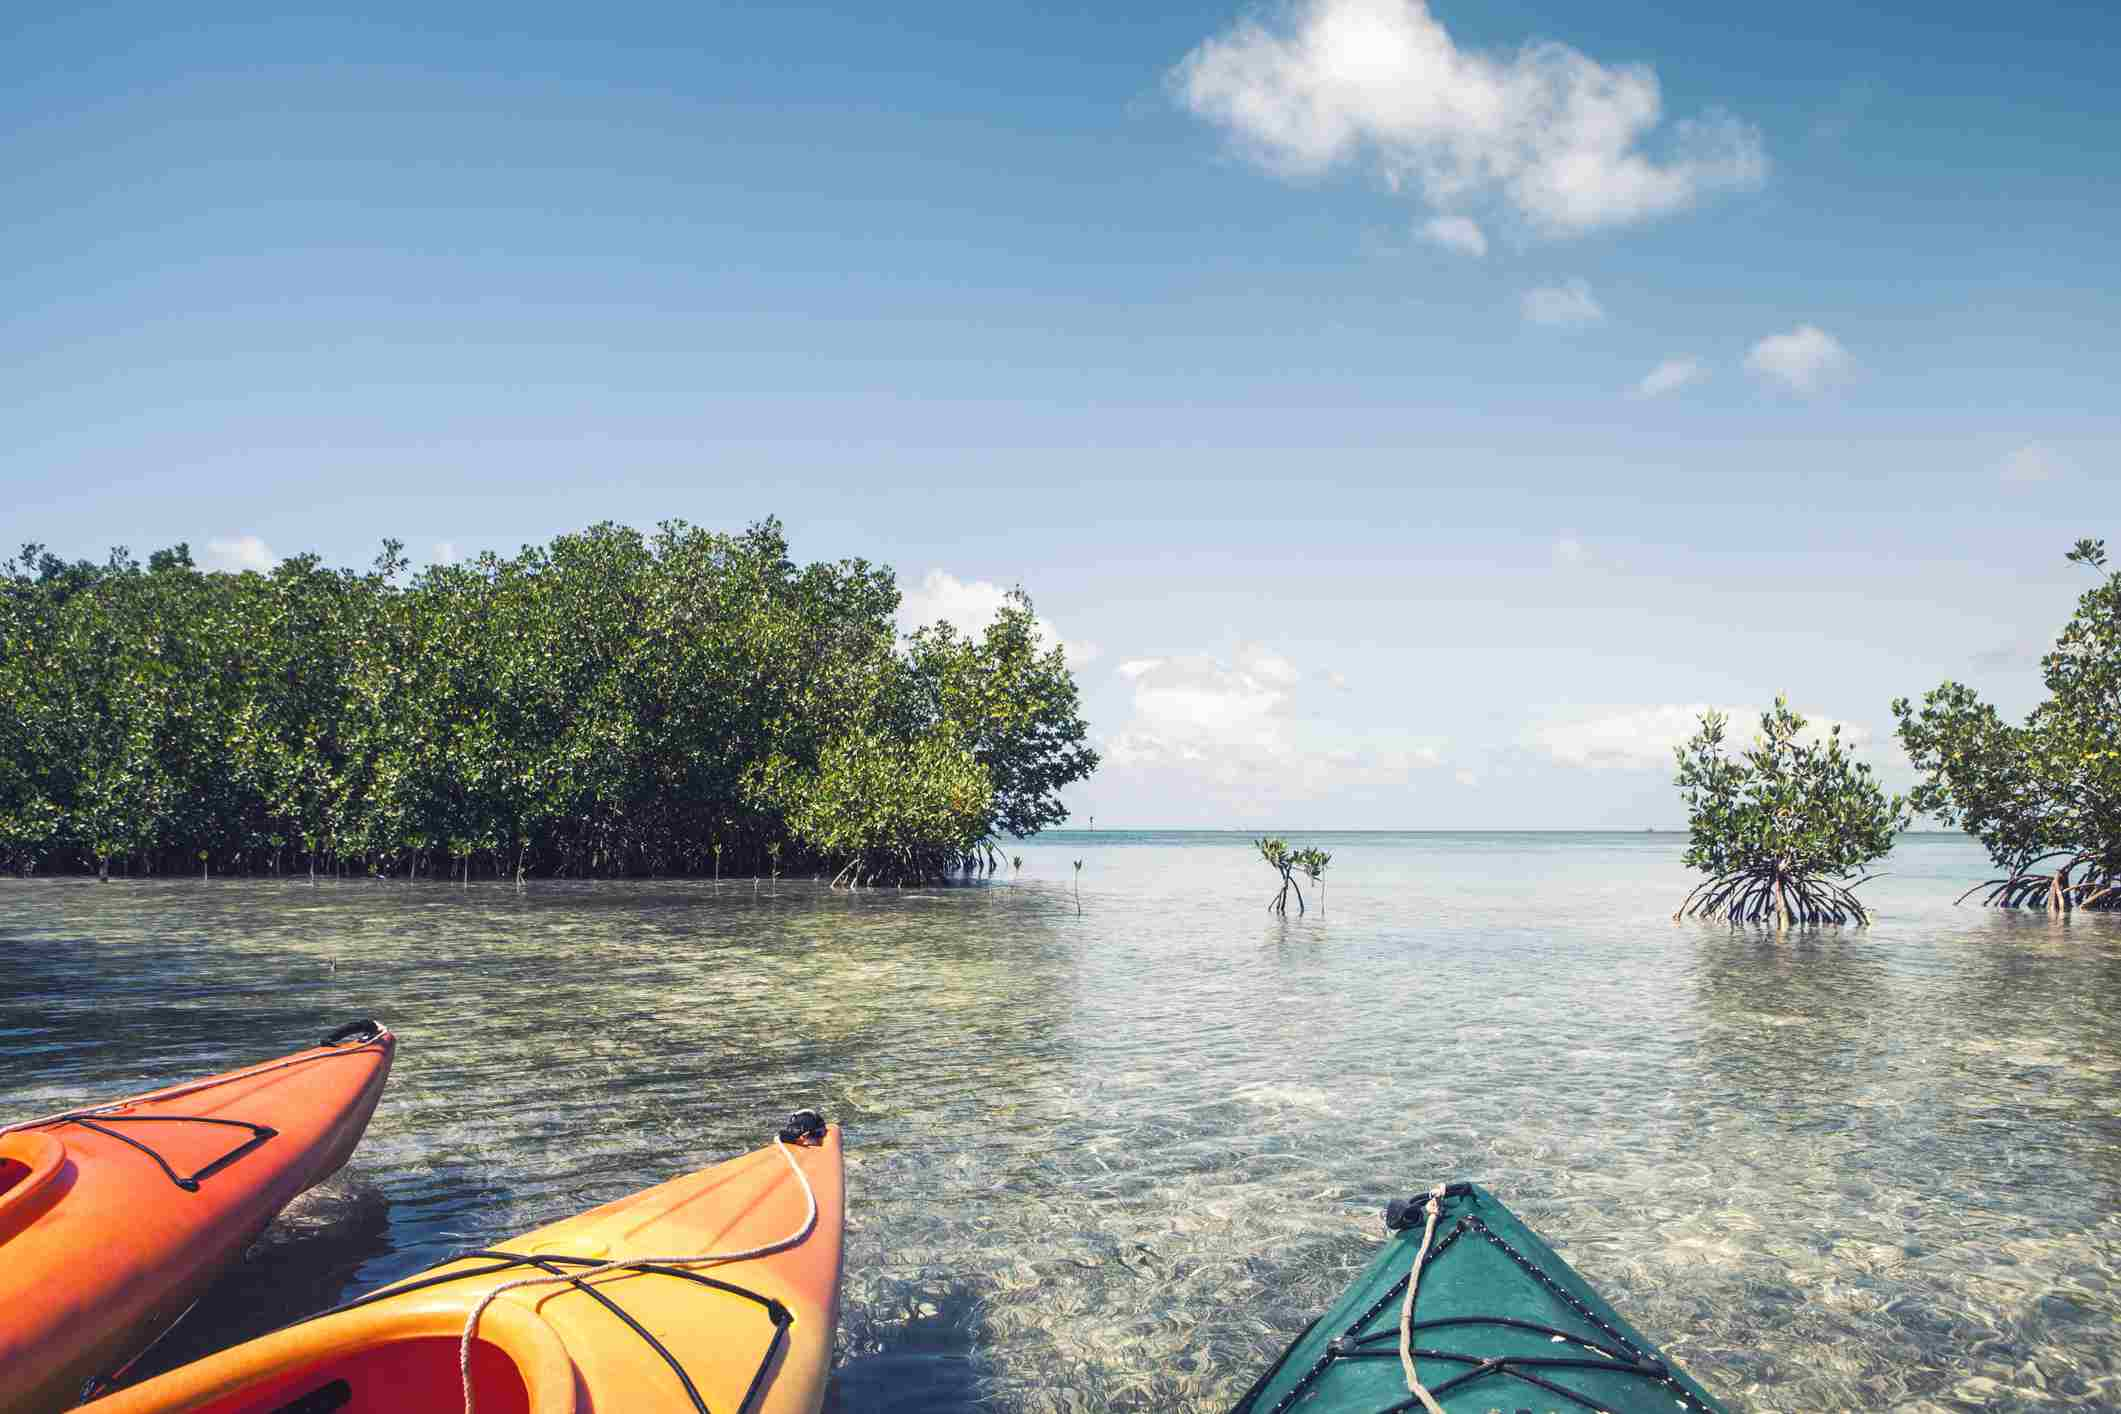 Kayaks in Mangrove